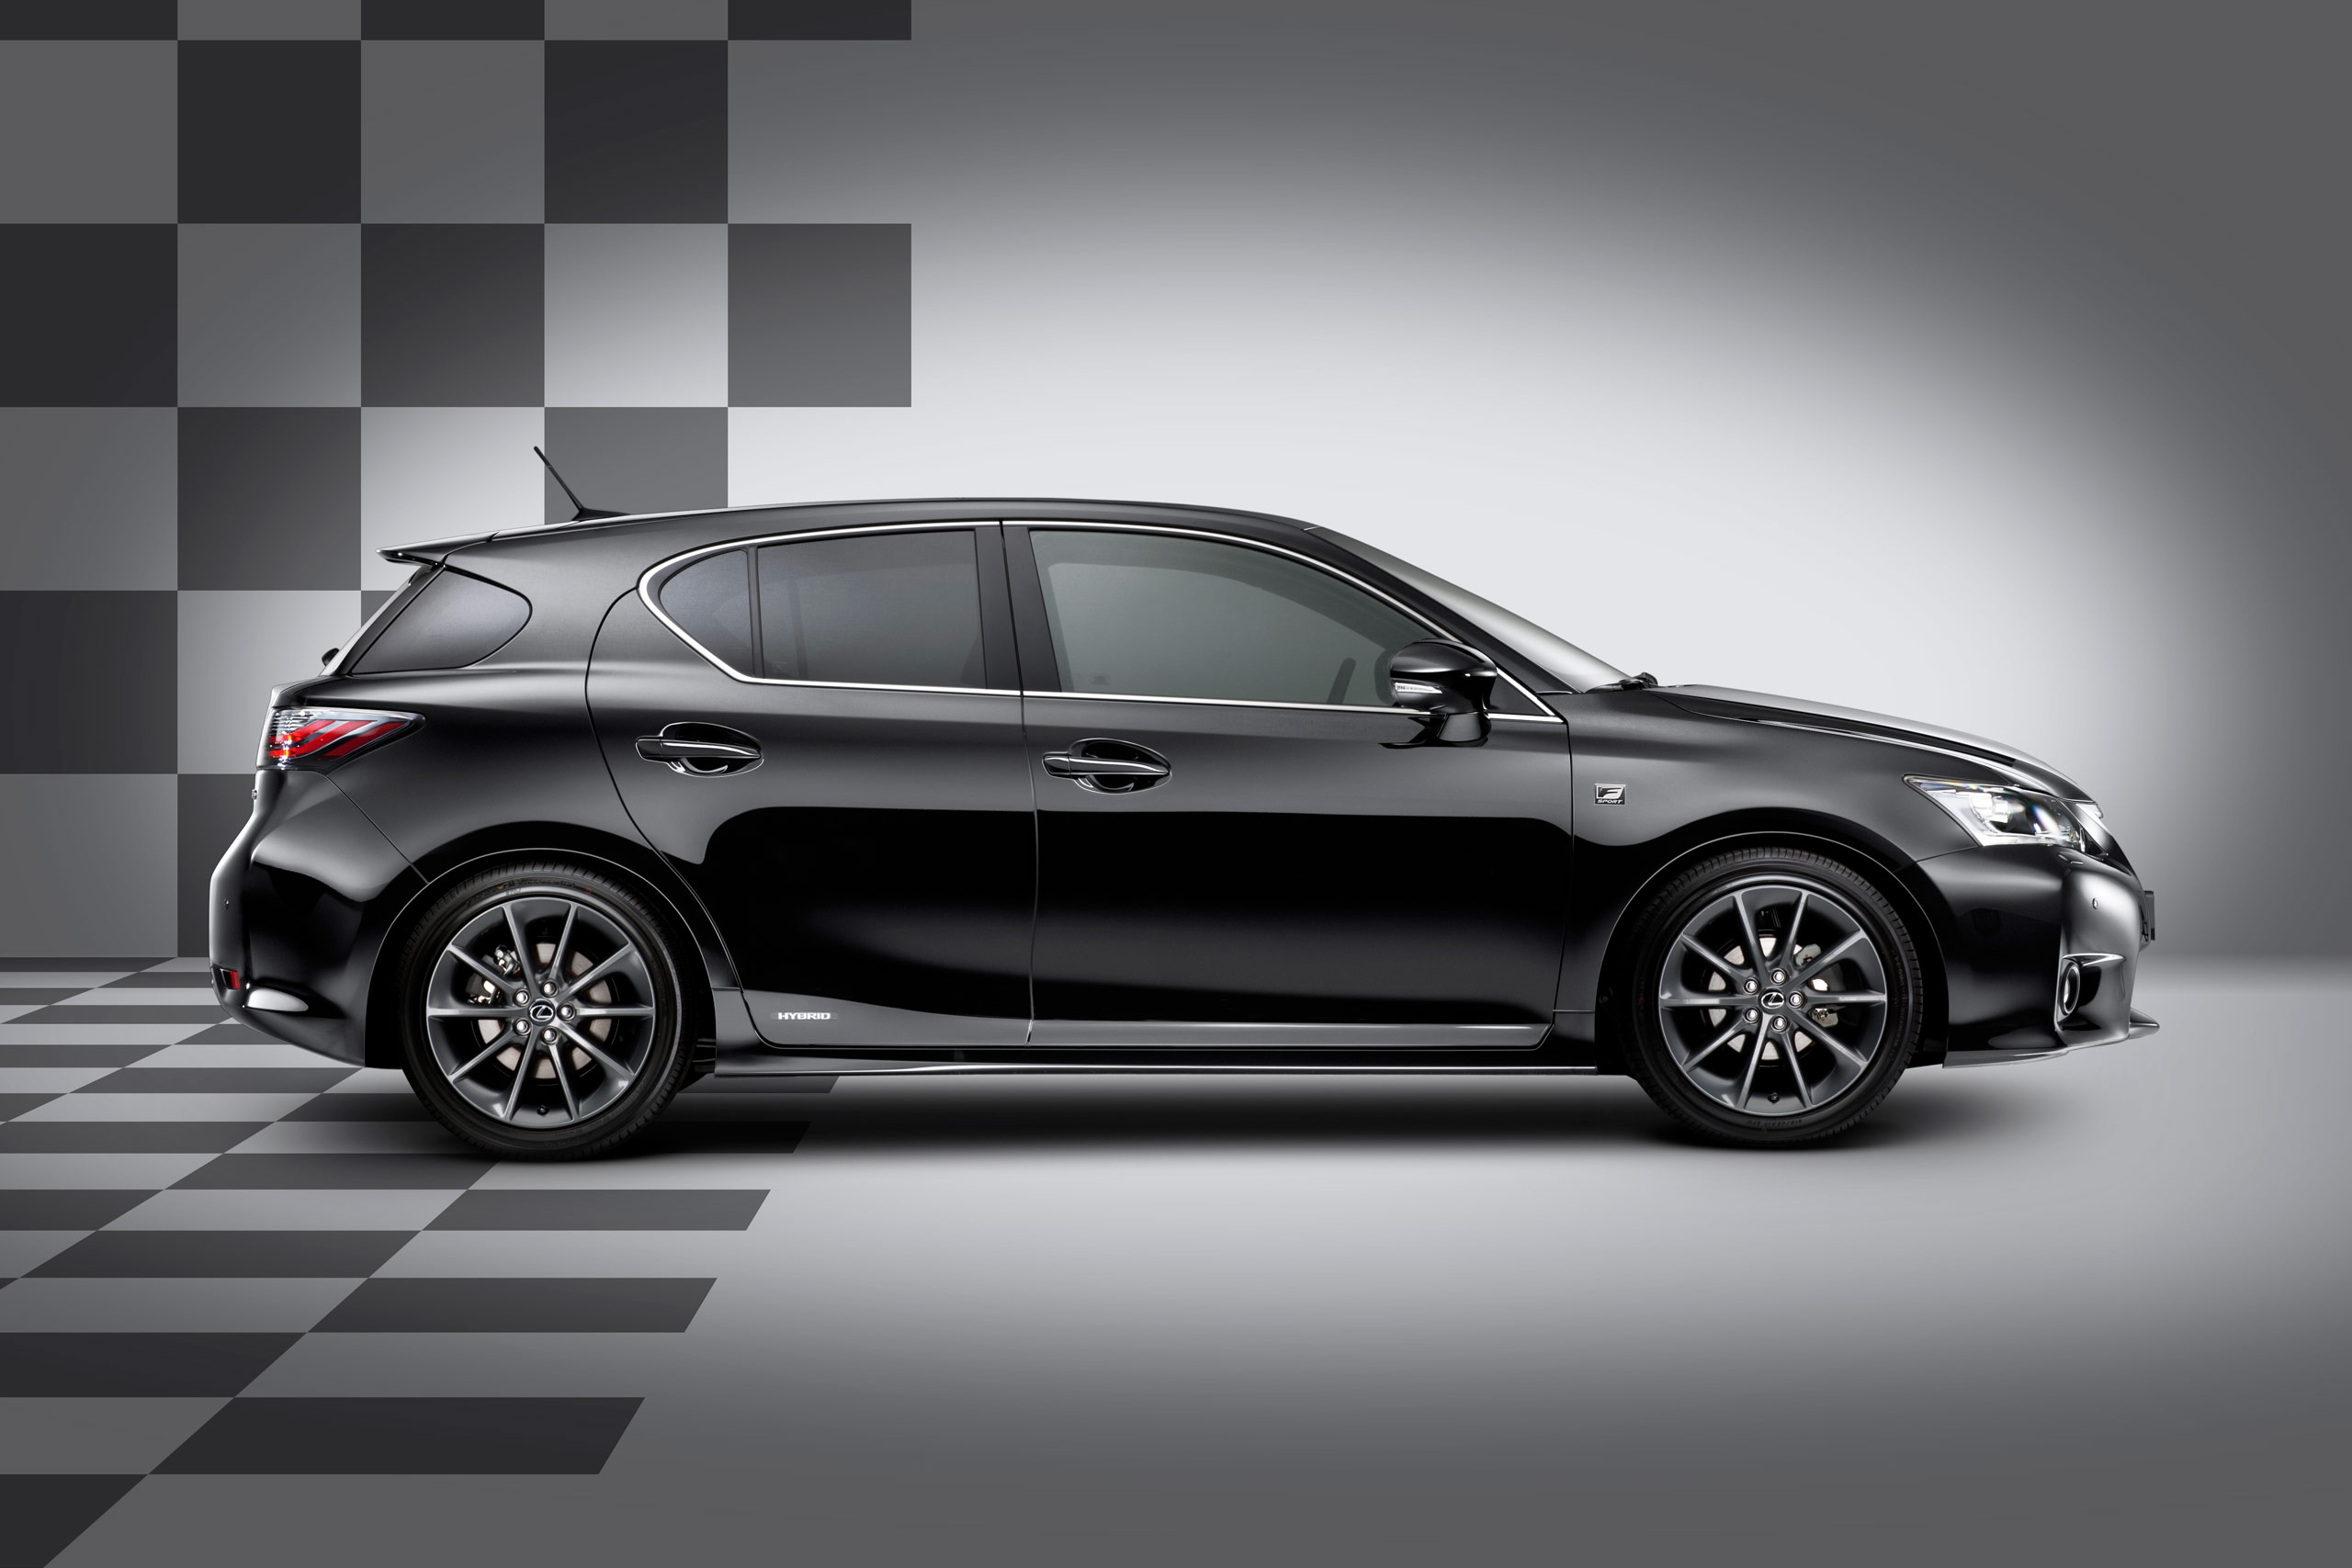 2012 Lexus CT 200h Information and photos MOMENTcar